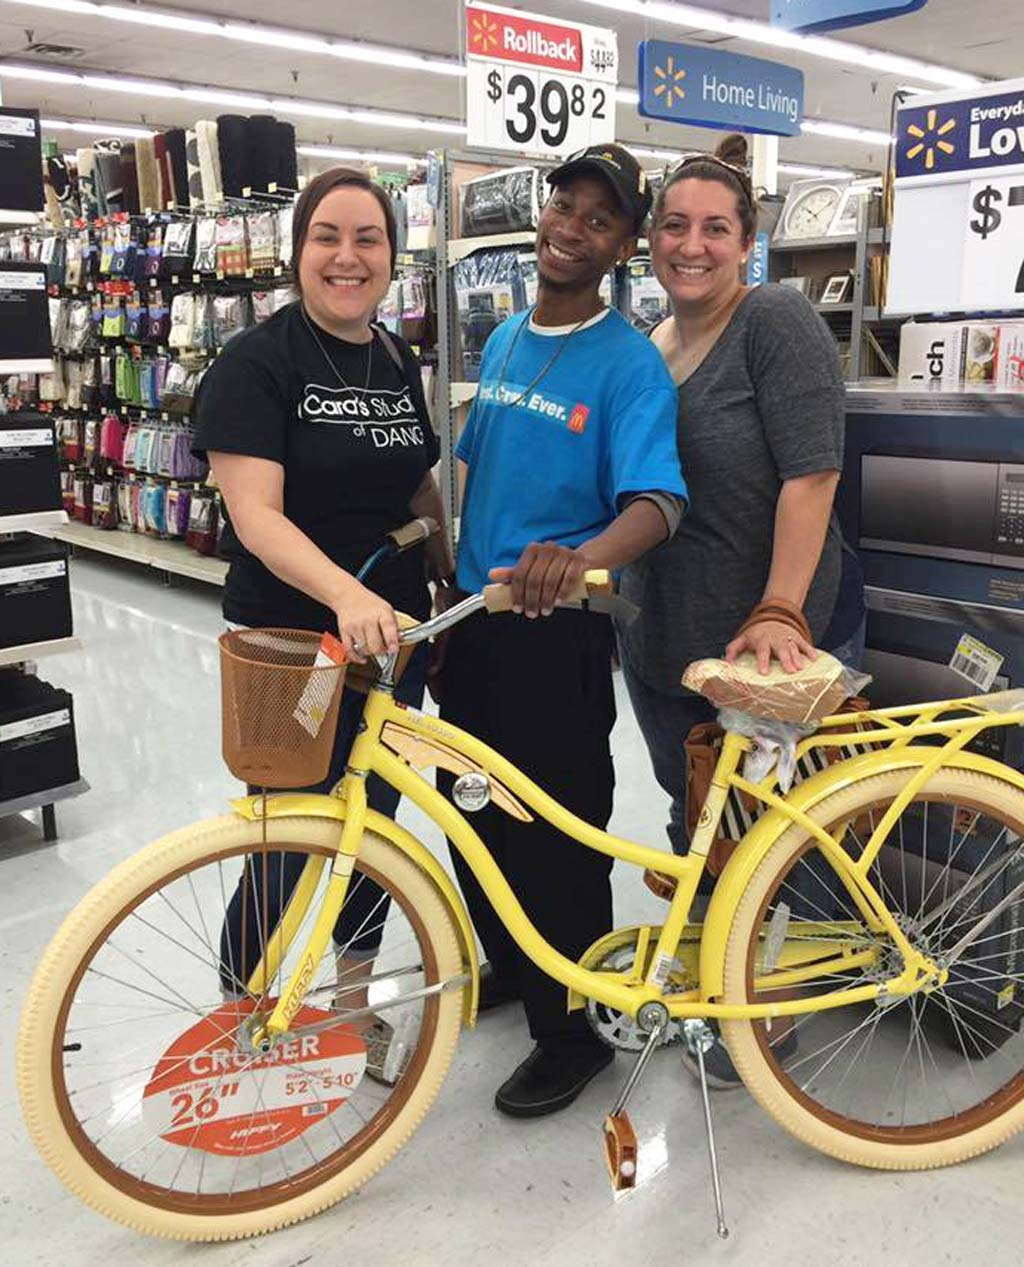 Community rallies to cover costs of bike for 'ray of sunshine' drive-thru attendant who struggled to get to work